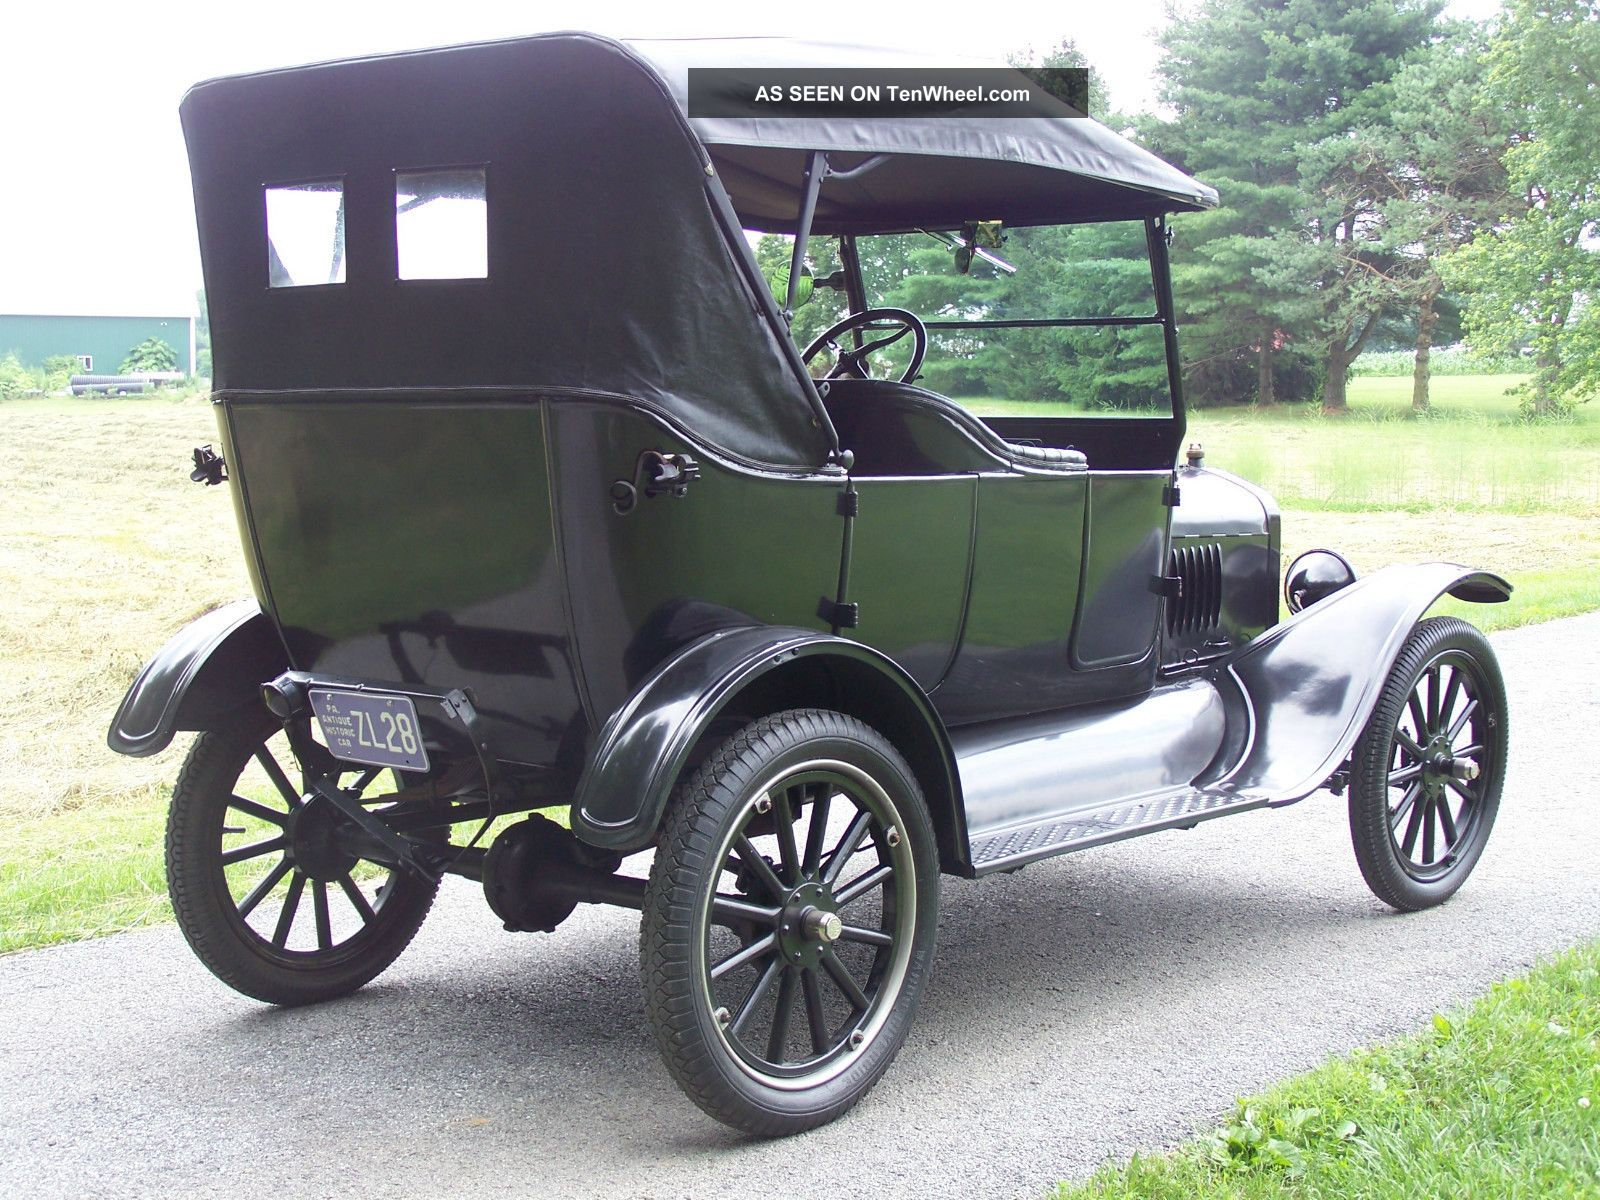 Model T Car: 1923 Ford Model T Touring Car